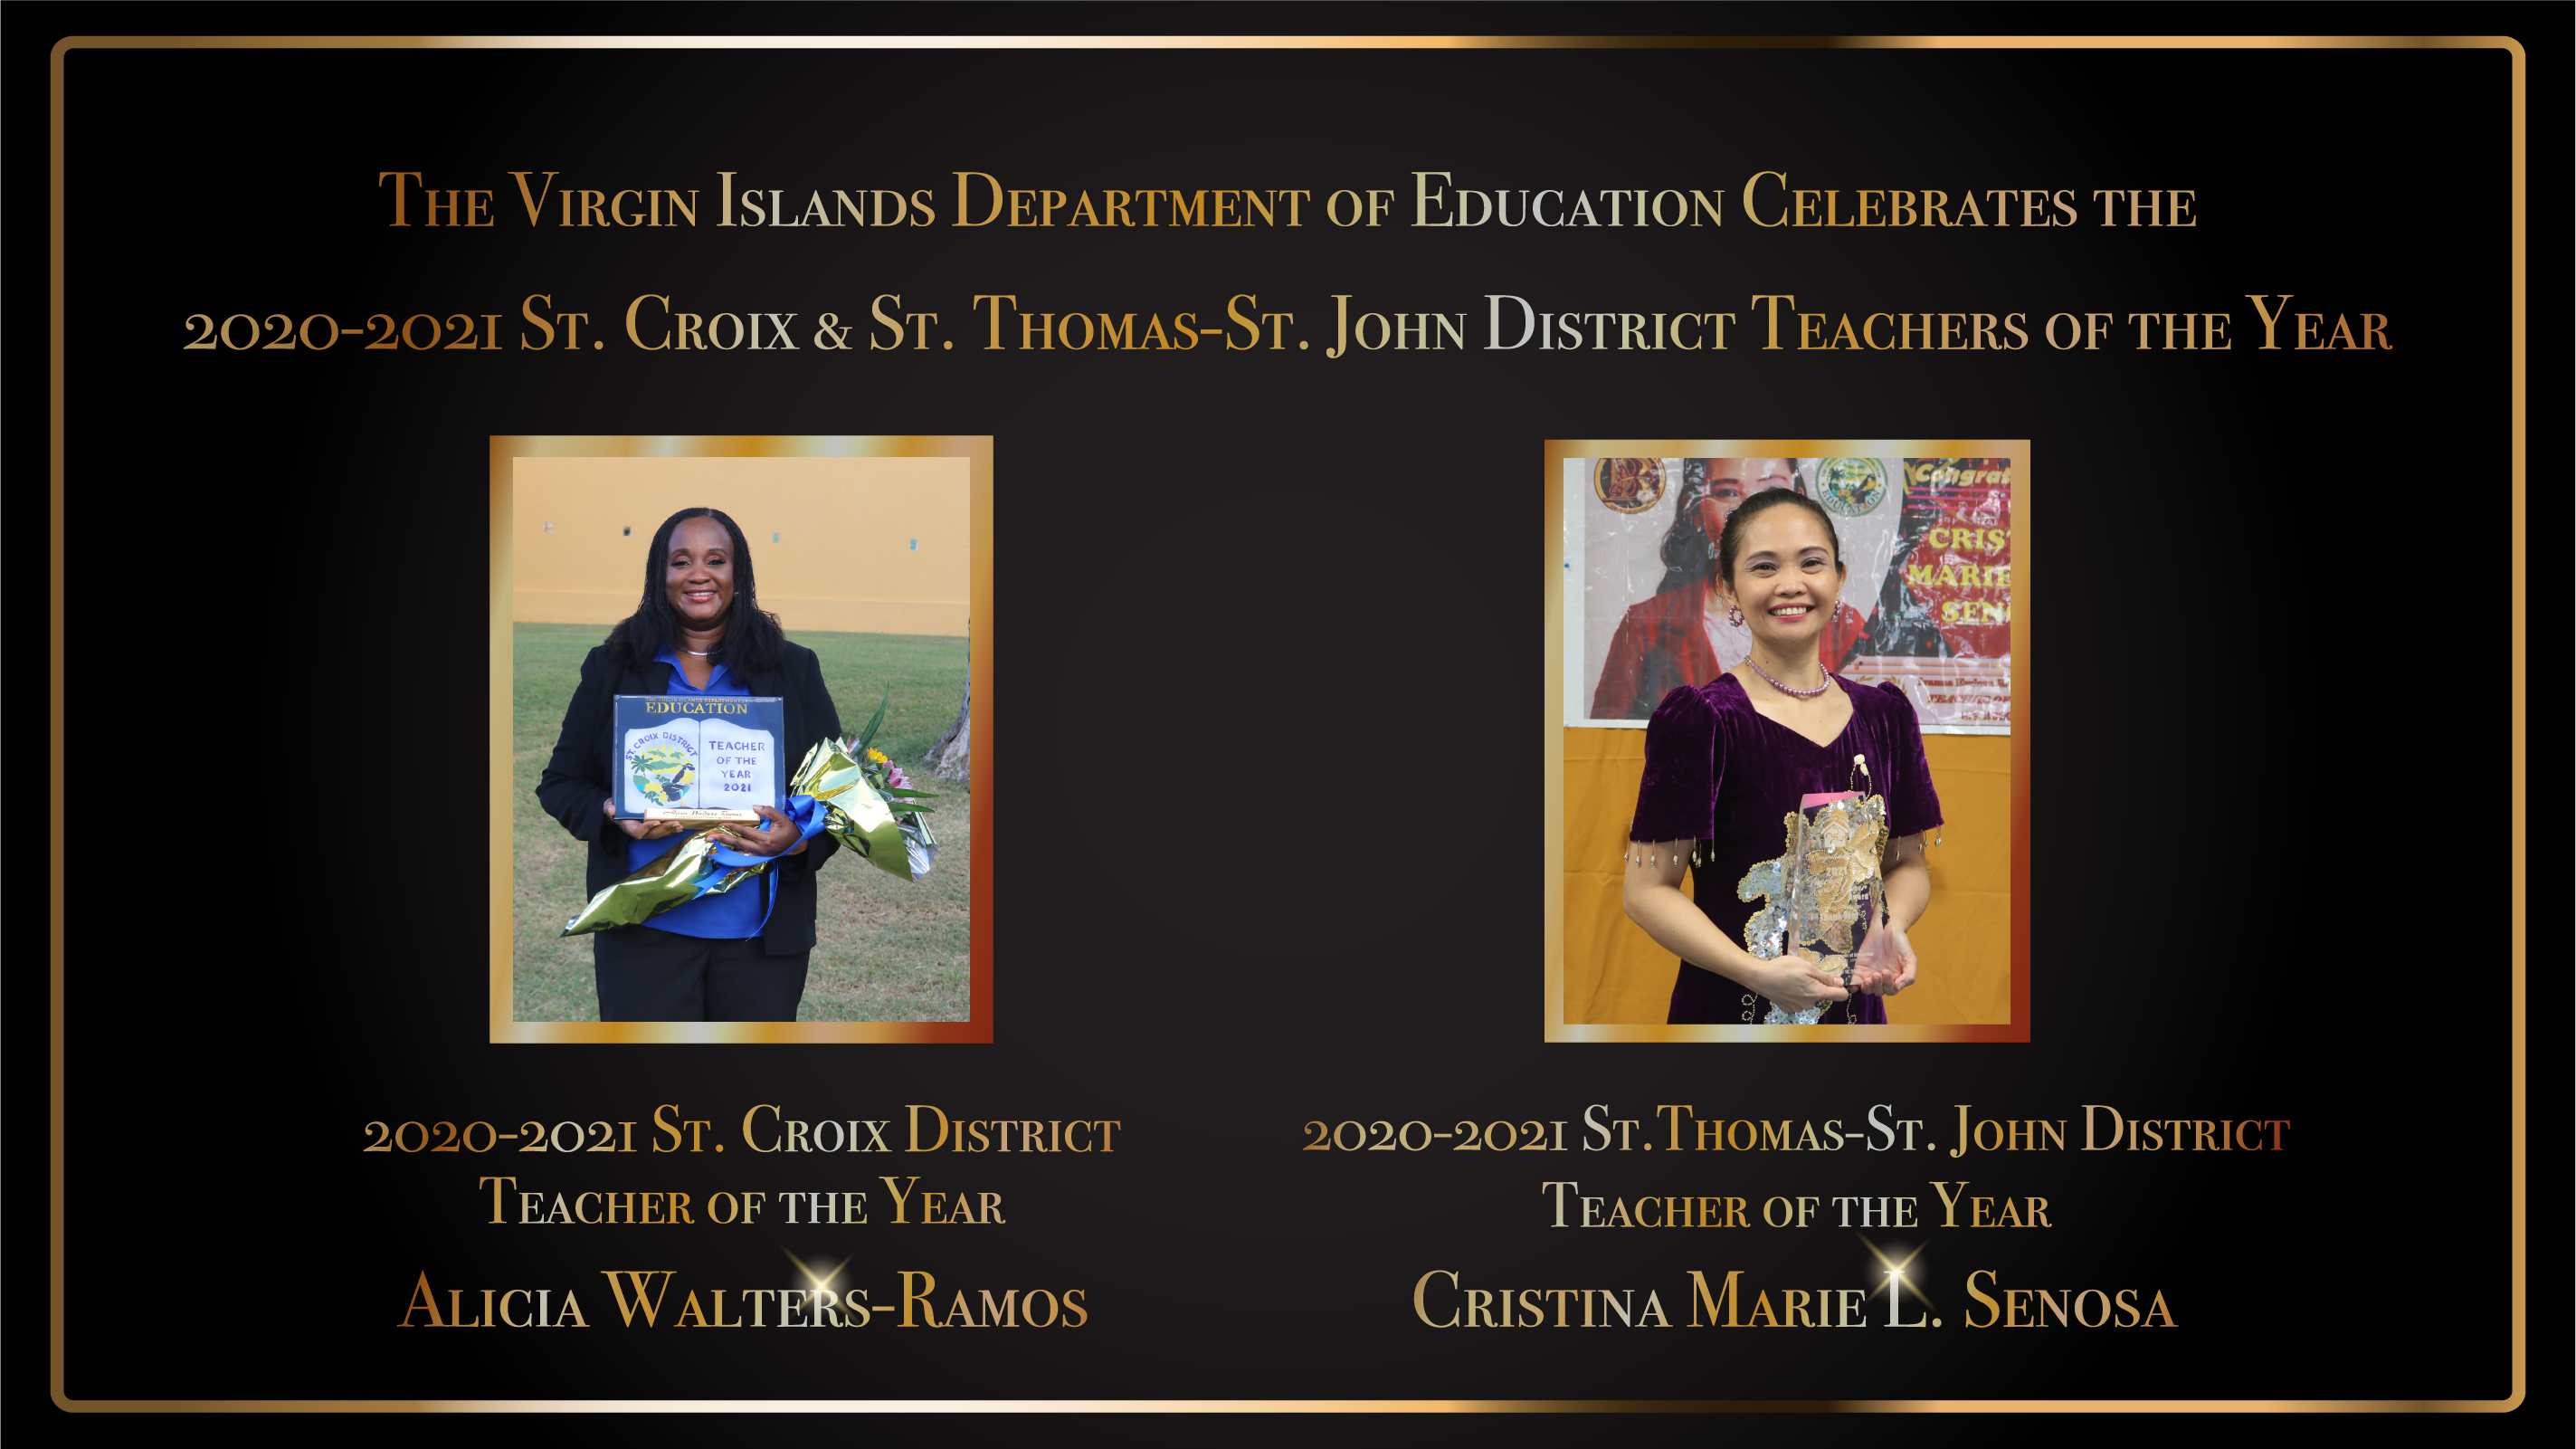 VIDE Celebrates the 2020-2021 St. Croix & St. Thomas-St. John District Teachers of the Year